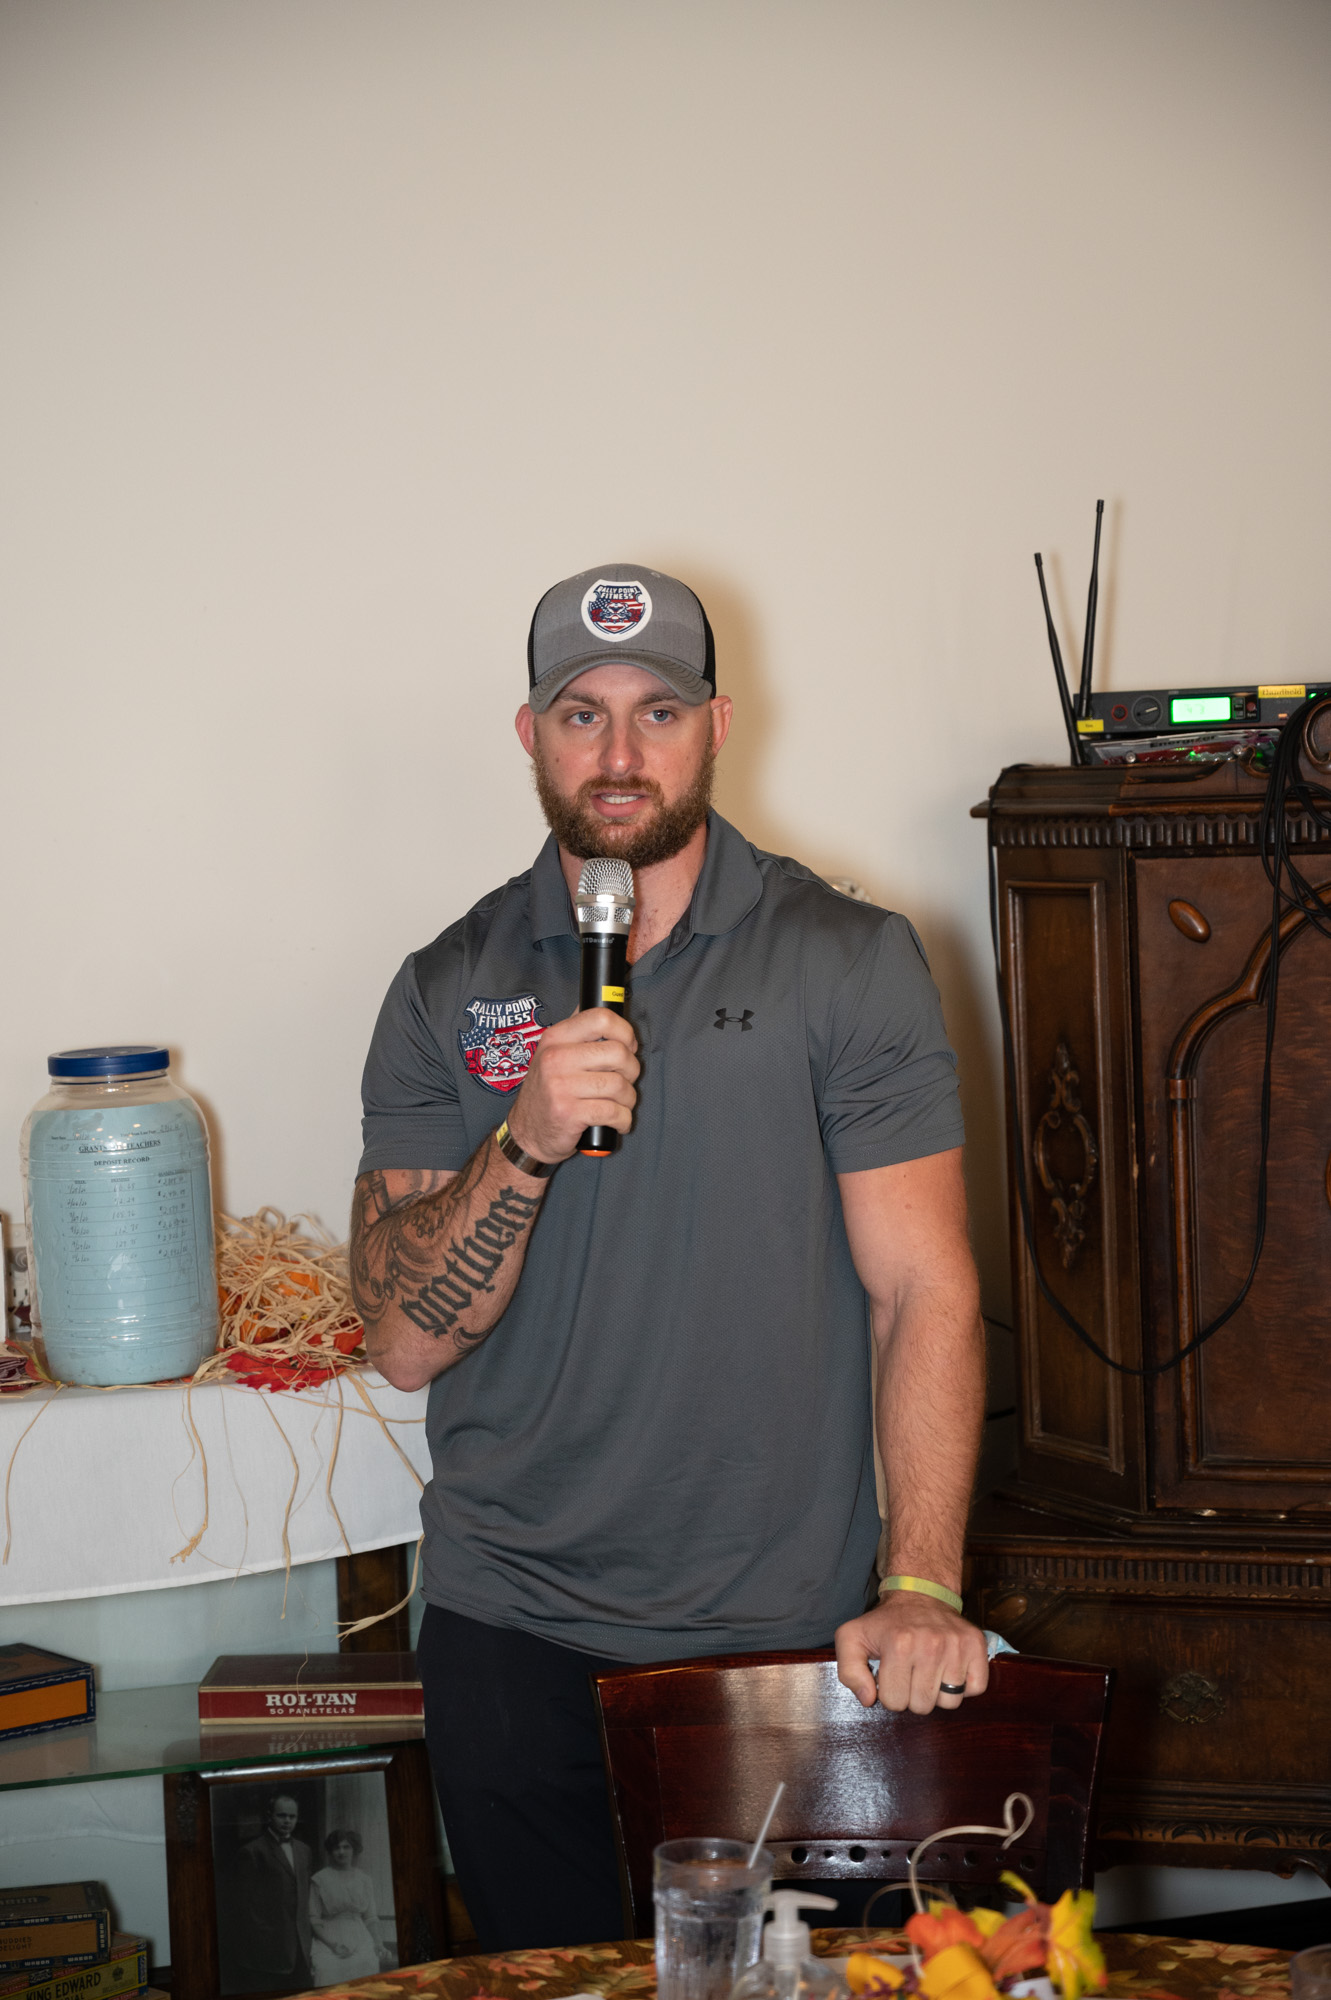 Gunnar talked to members about his new fitness center, Rally Point Fitness.